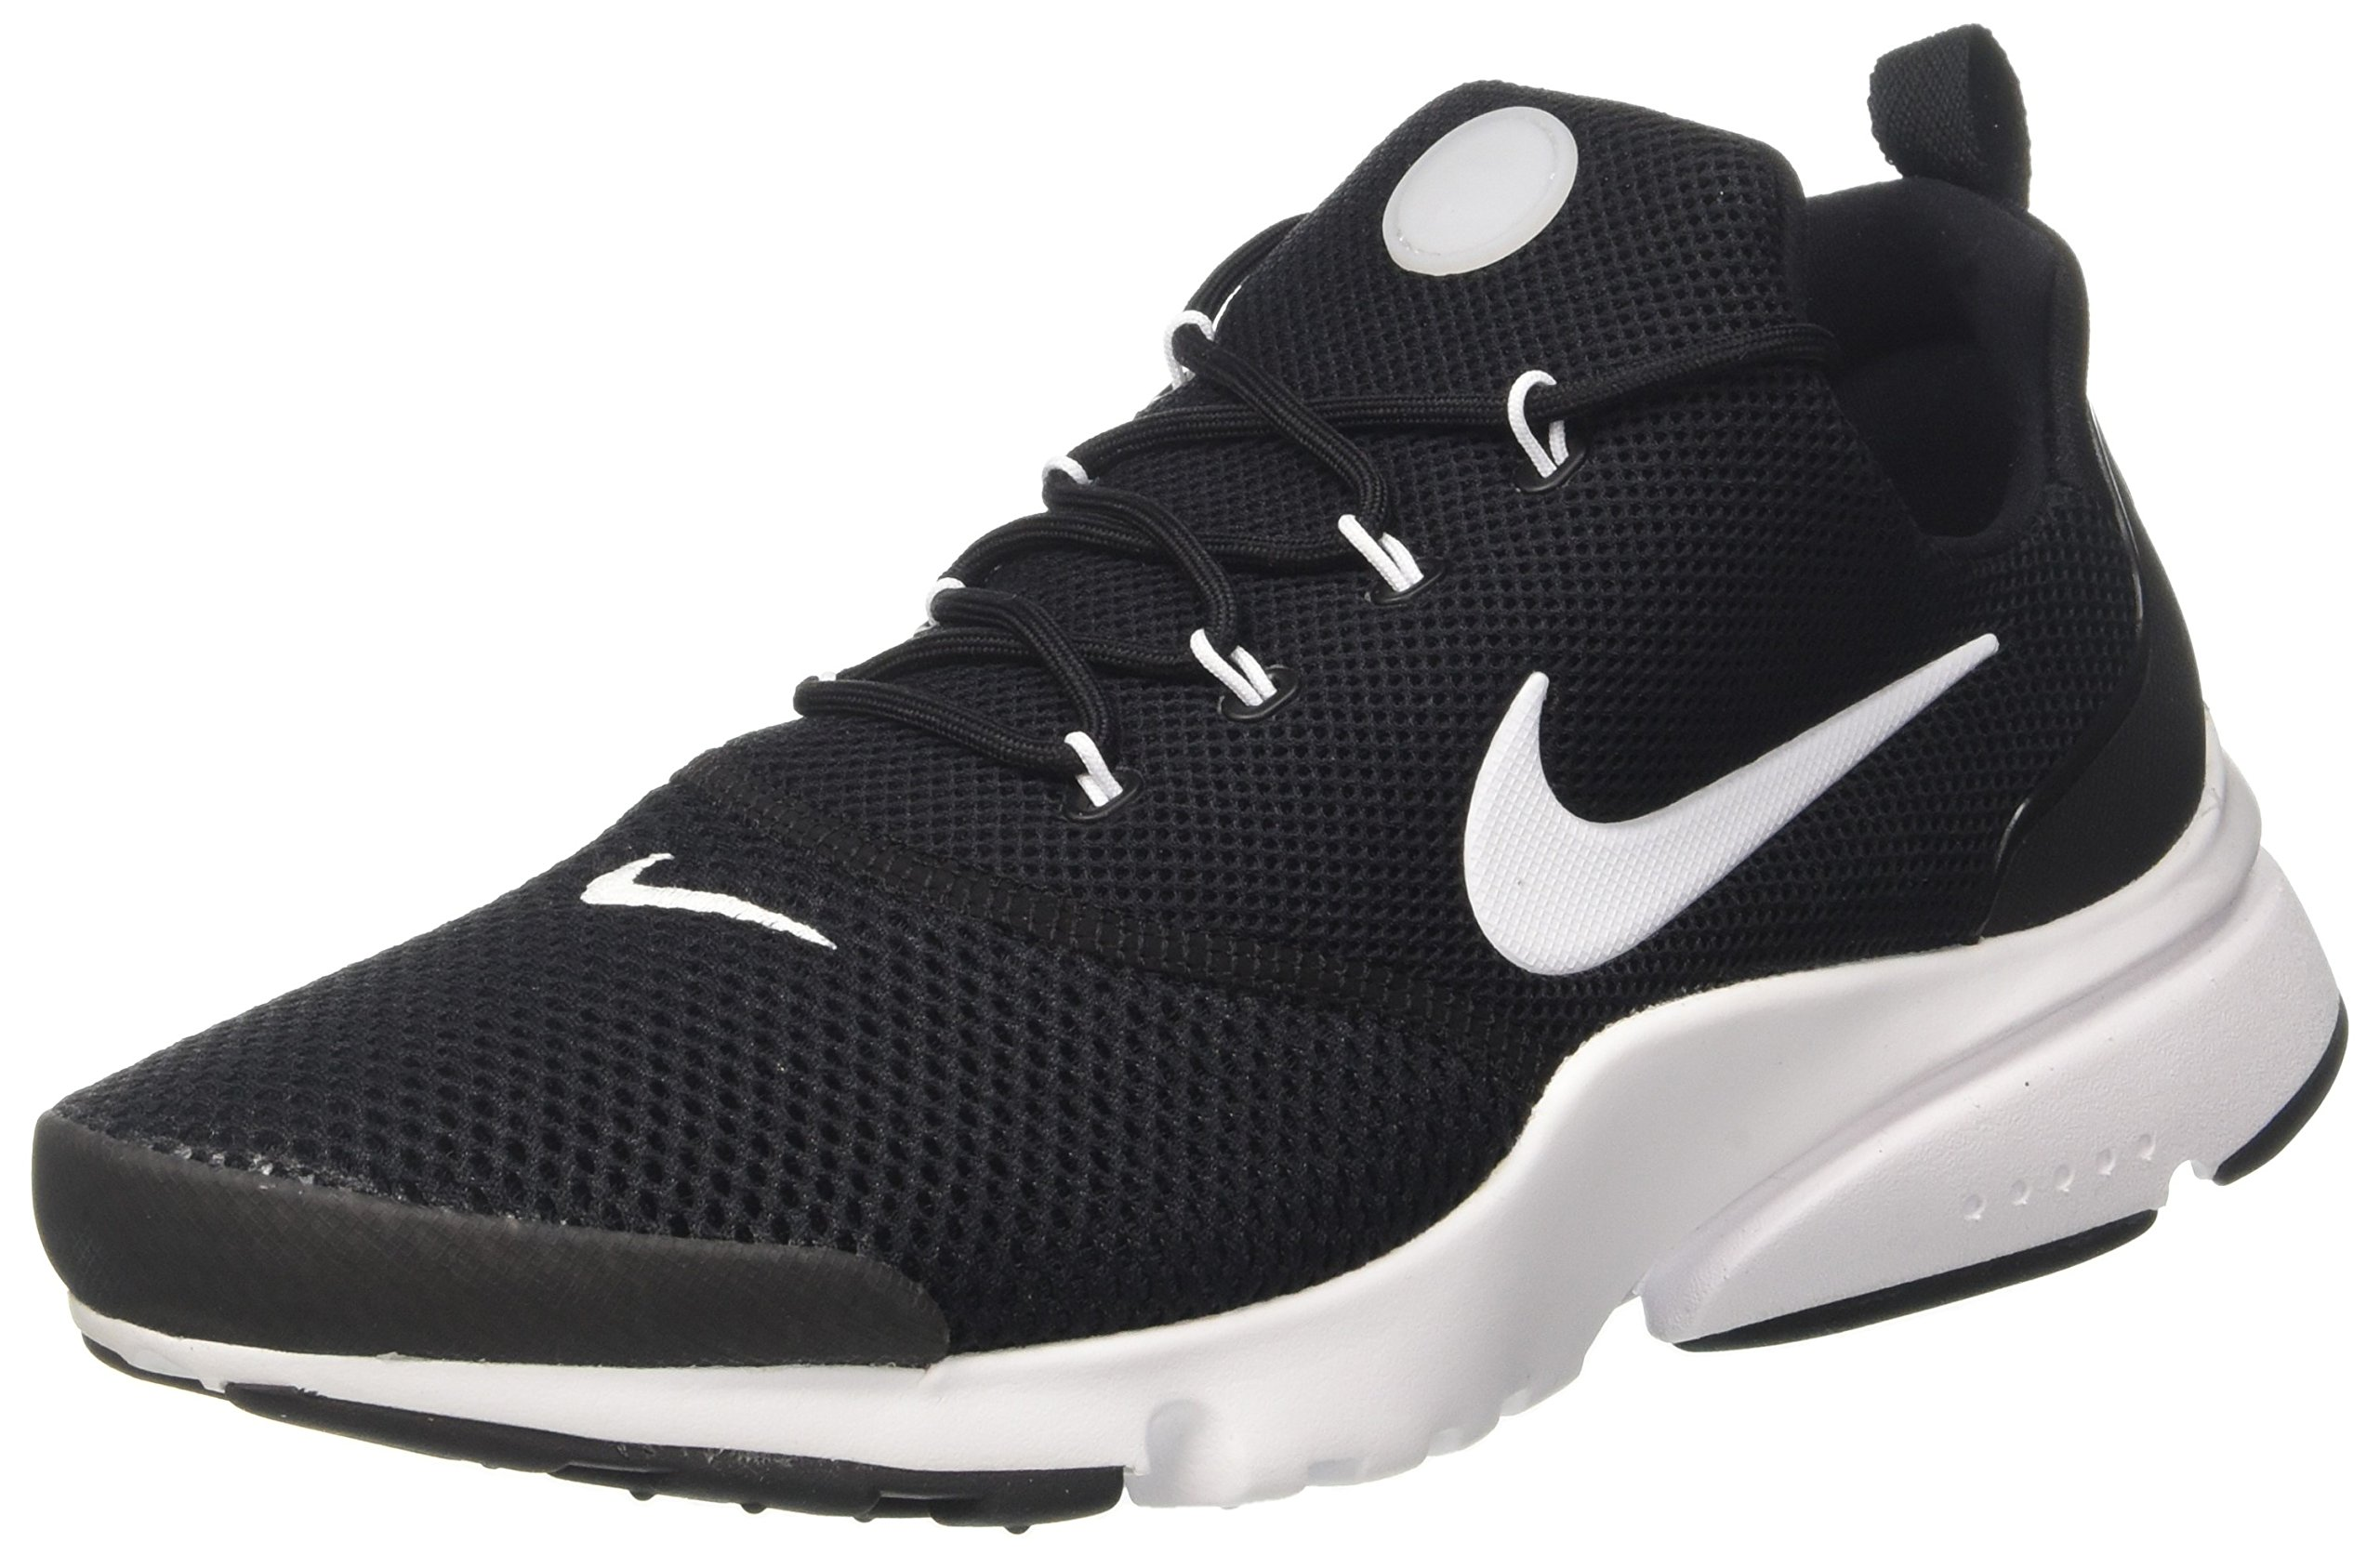 quite nice 5e4df 1d148 Galleon - NIKE Mens Presto Fly Running Shoes BlackWhite 908019-002 Size 12